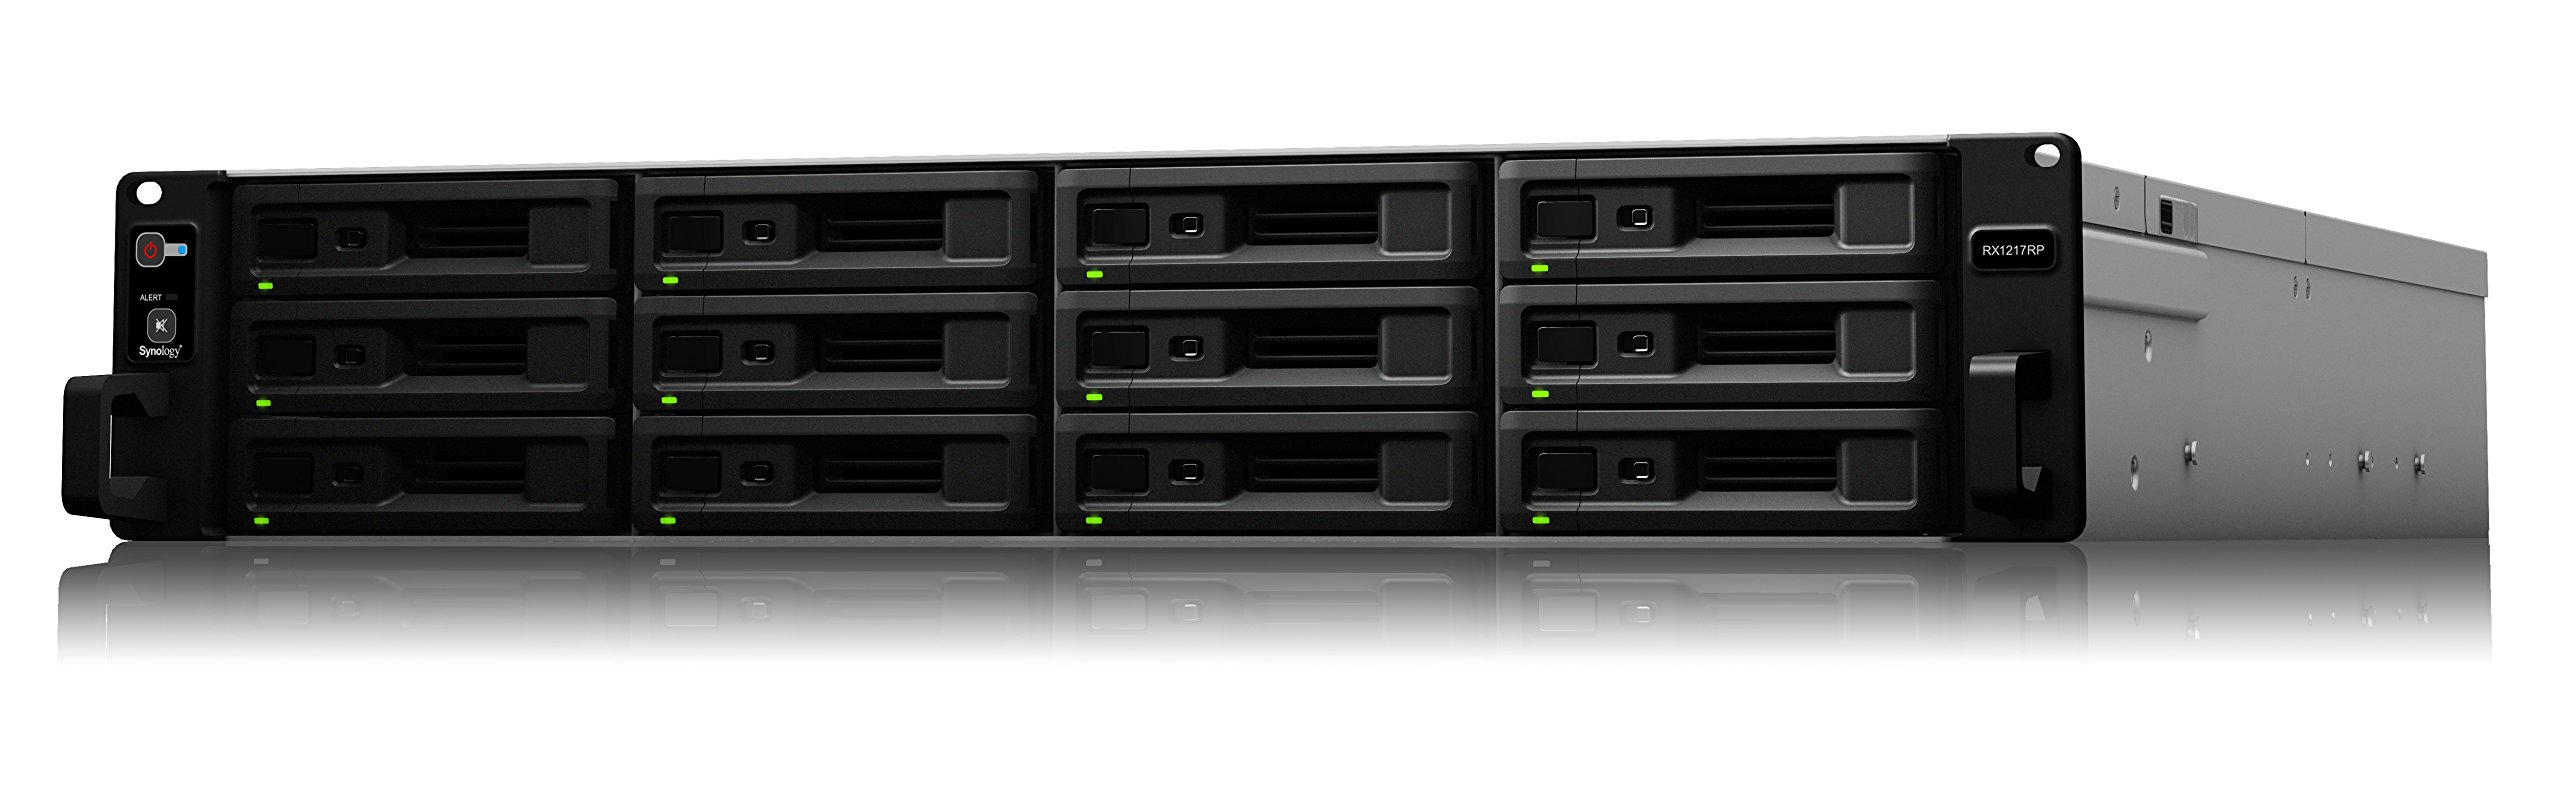 Synology RX1217RP Redundant Power Expansion for RackStation (Diskless) by Synology